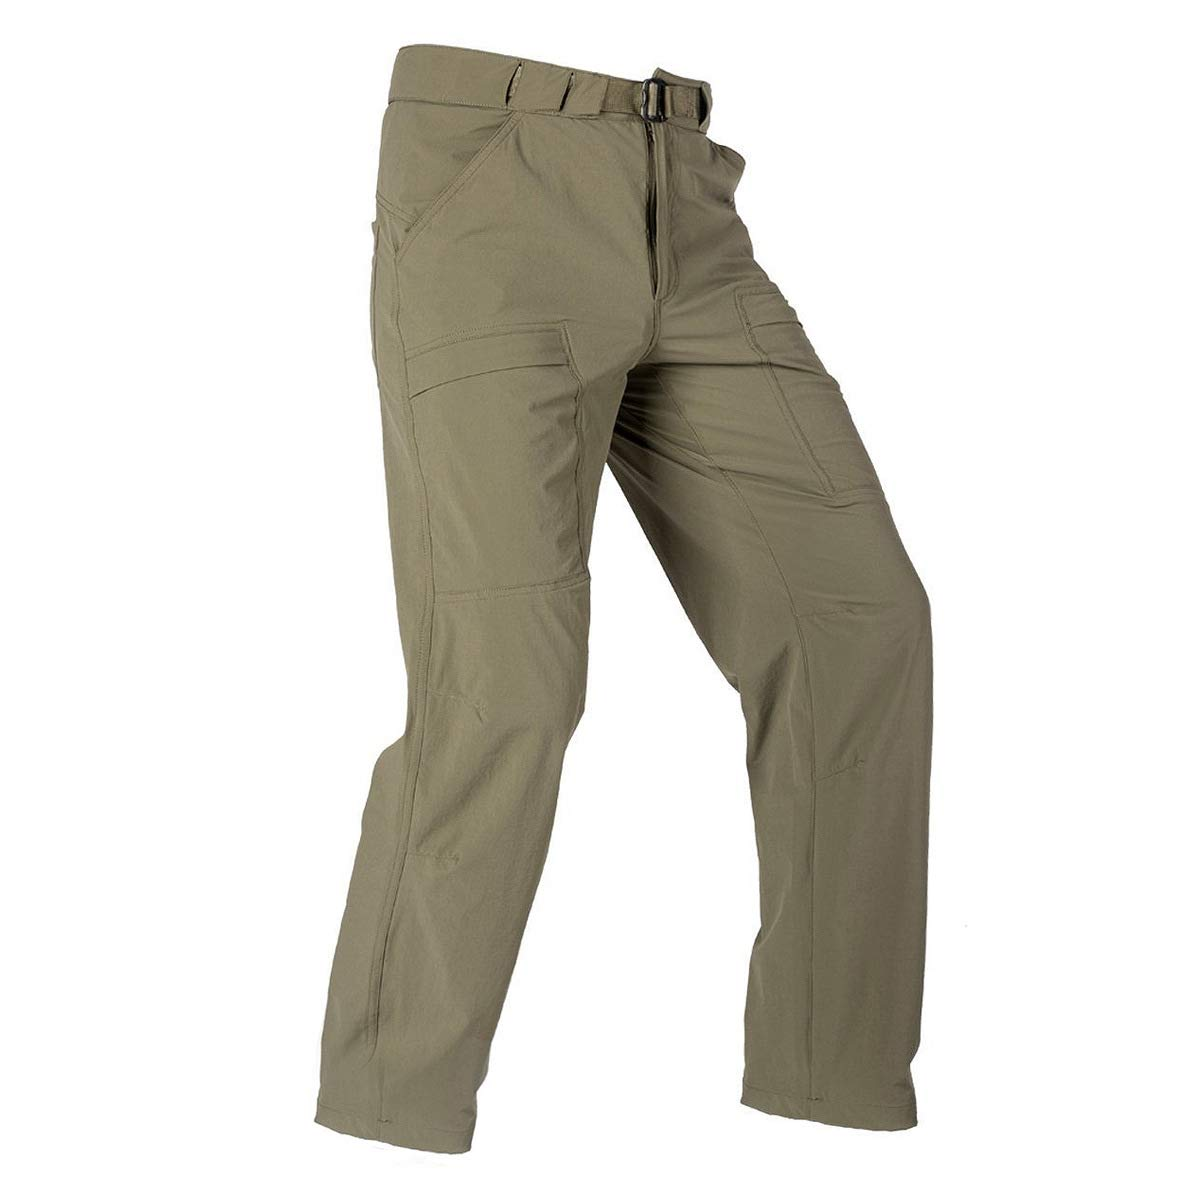 FREE SOLDIER Men's Outdoor Cargo Hiking Pants Lightweight Waterproof Quick Dry Tactical Pants Nylon Spandex(Mud 36W/30L) by FREE SOLDIER